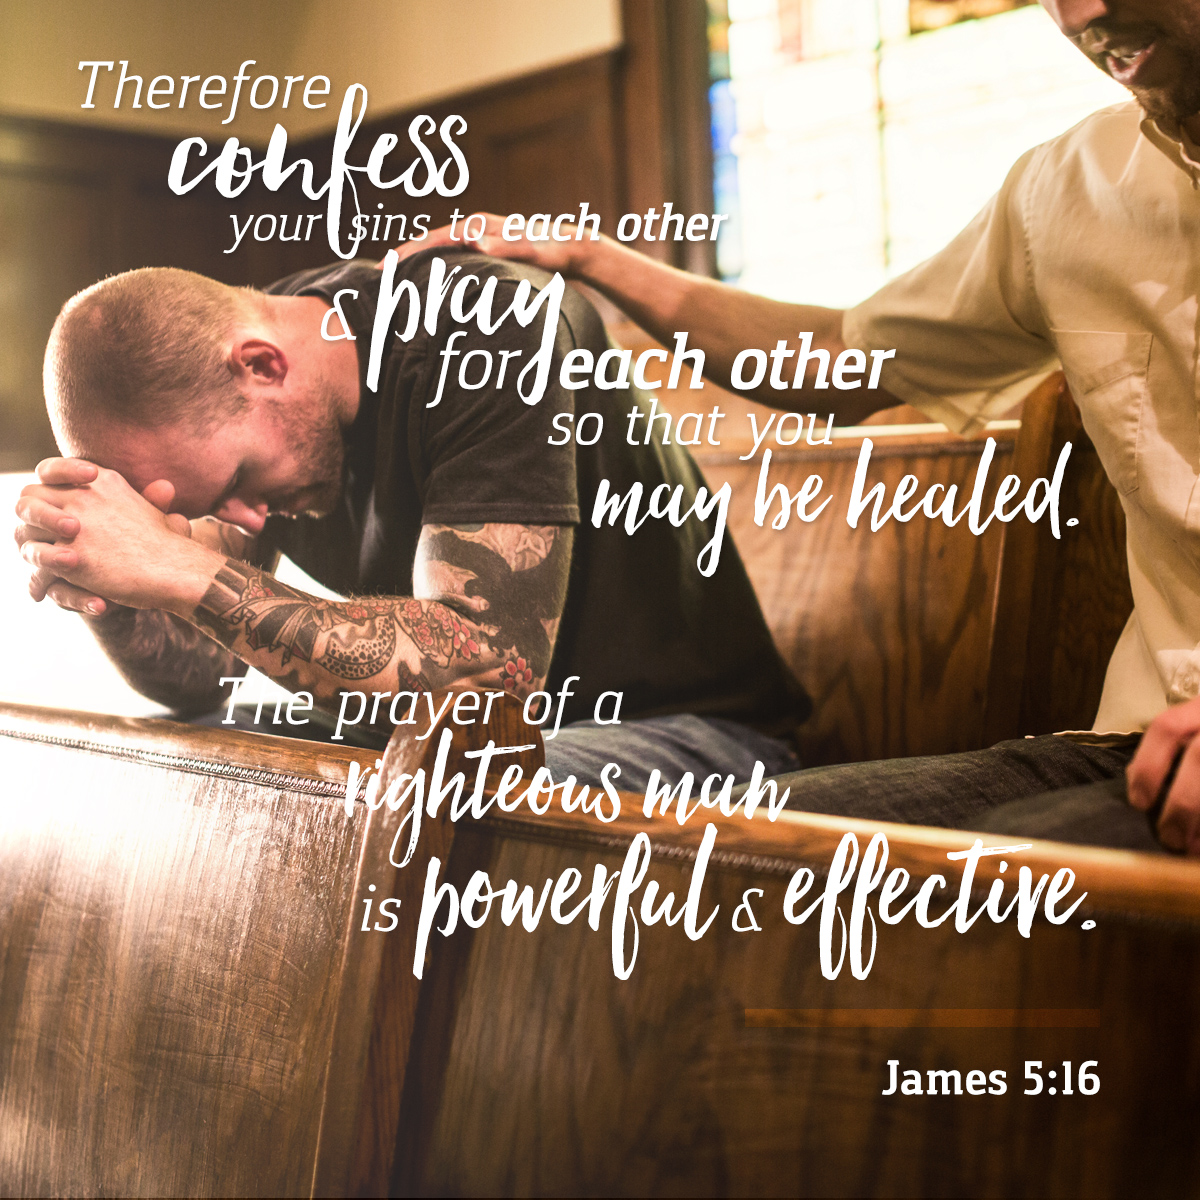 James 5:16 - Daily Verse